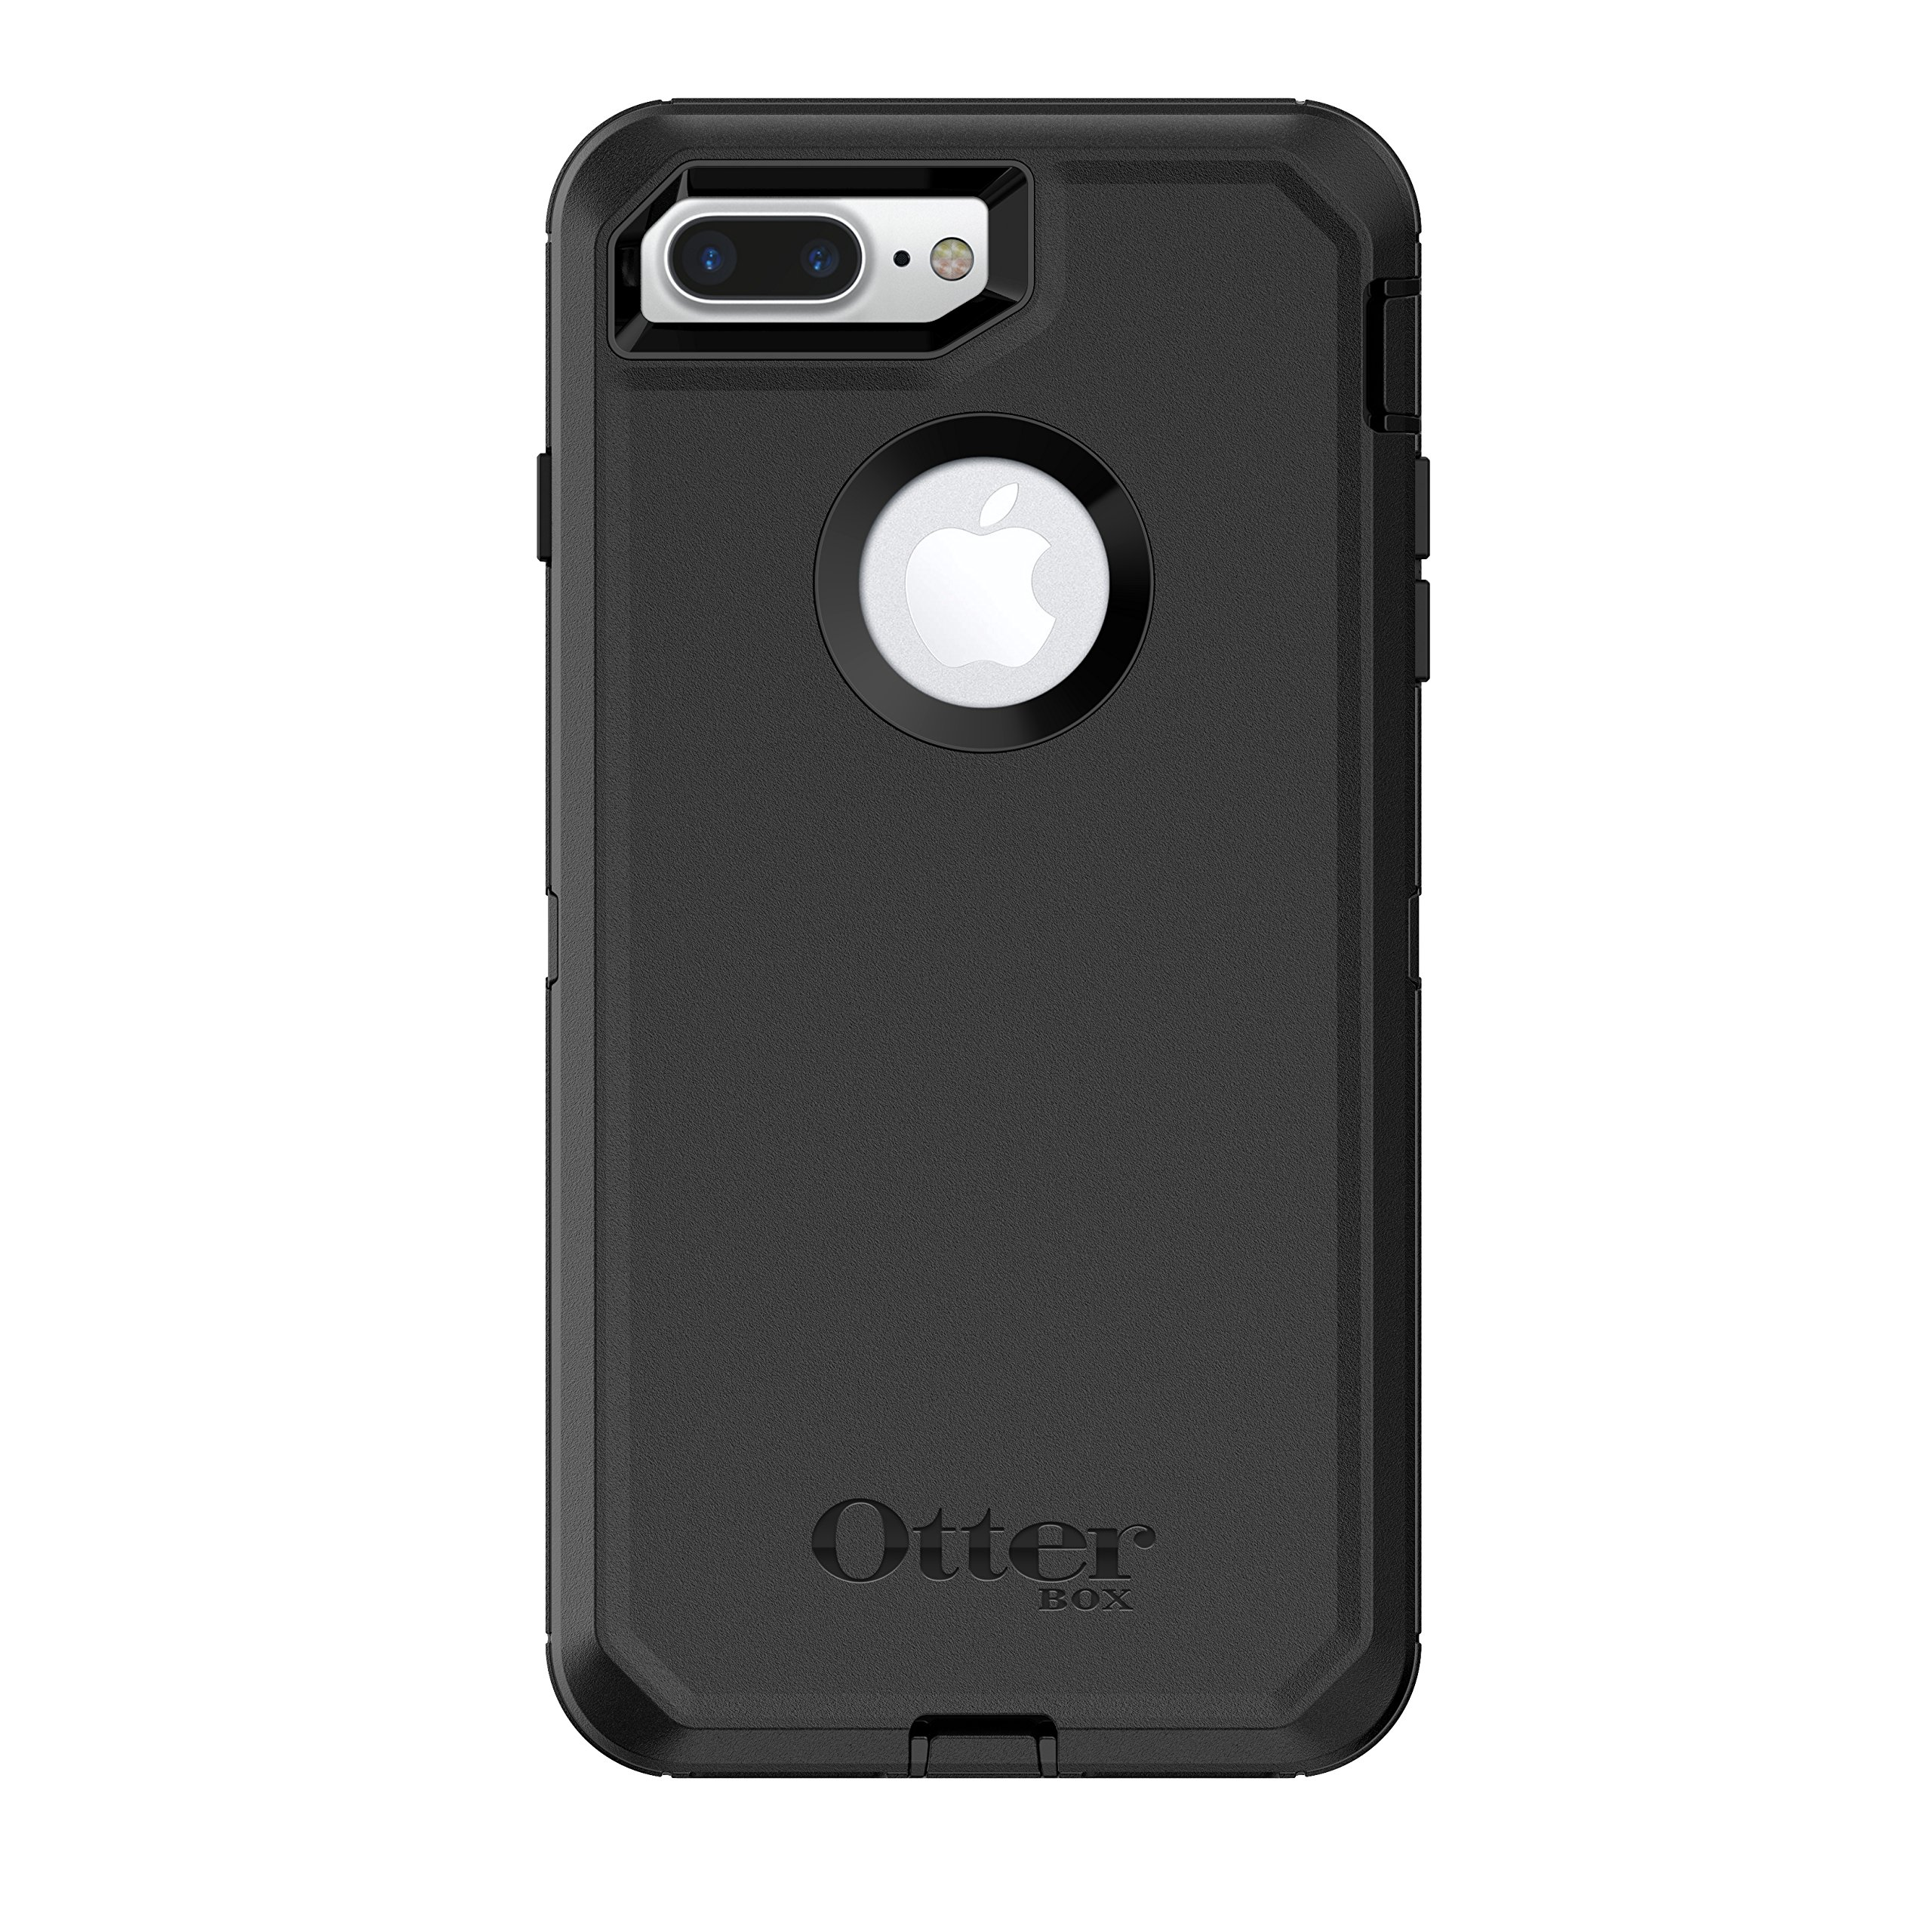 OtterBox 77-56825 DEFENDER SERIES Case for iPhone 8 Plus & iPhone 7 Plus (ONLY)  - BLACK